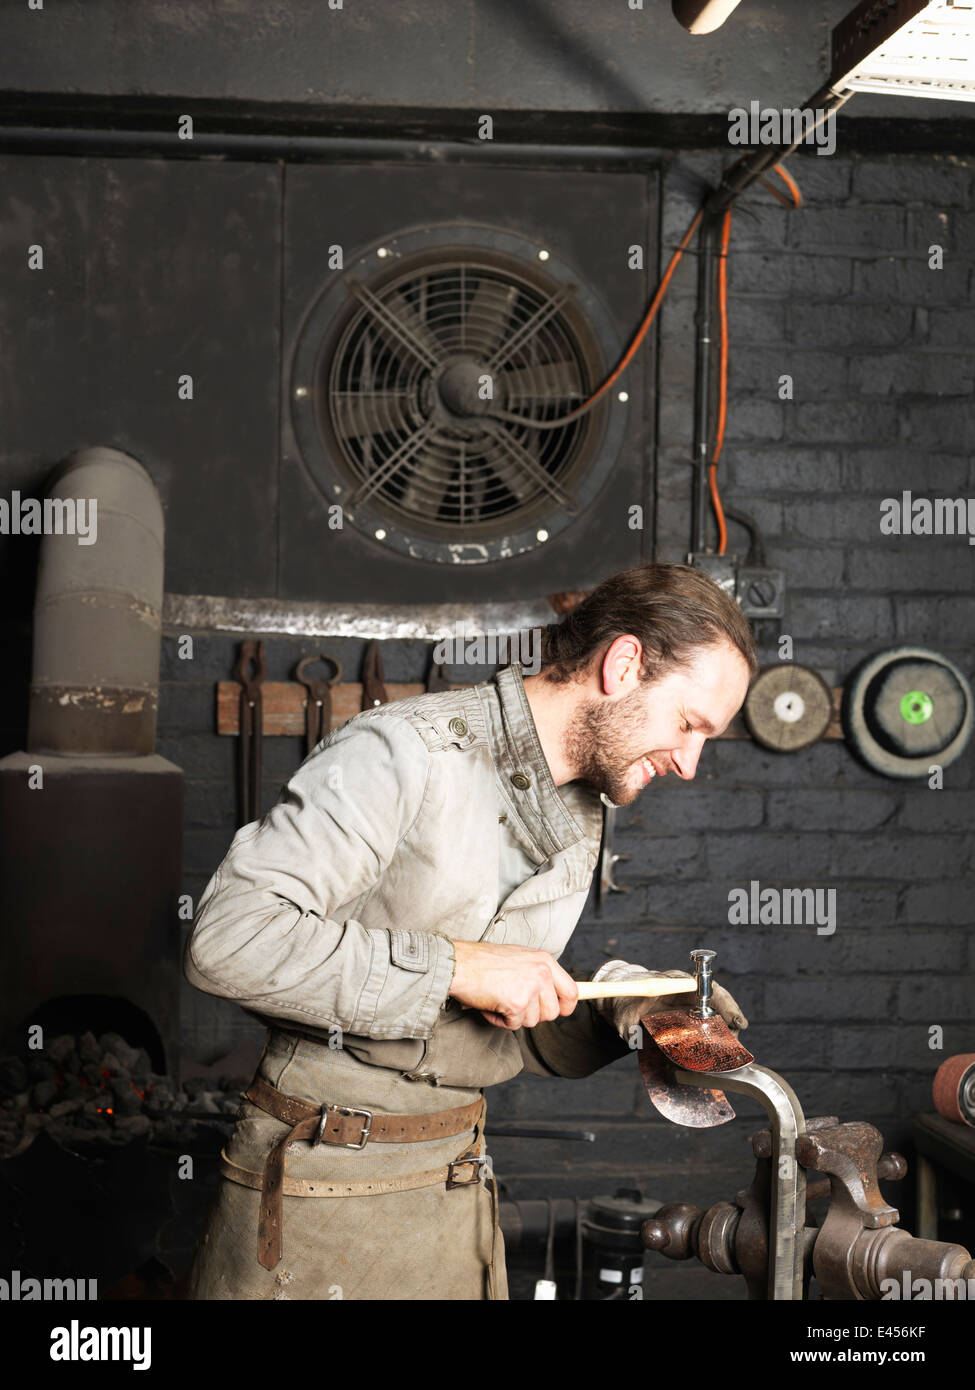 Blacksmith hammering copper in workshop - Stock Image